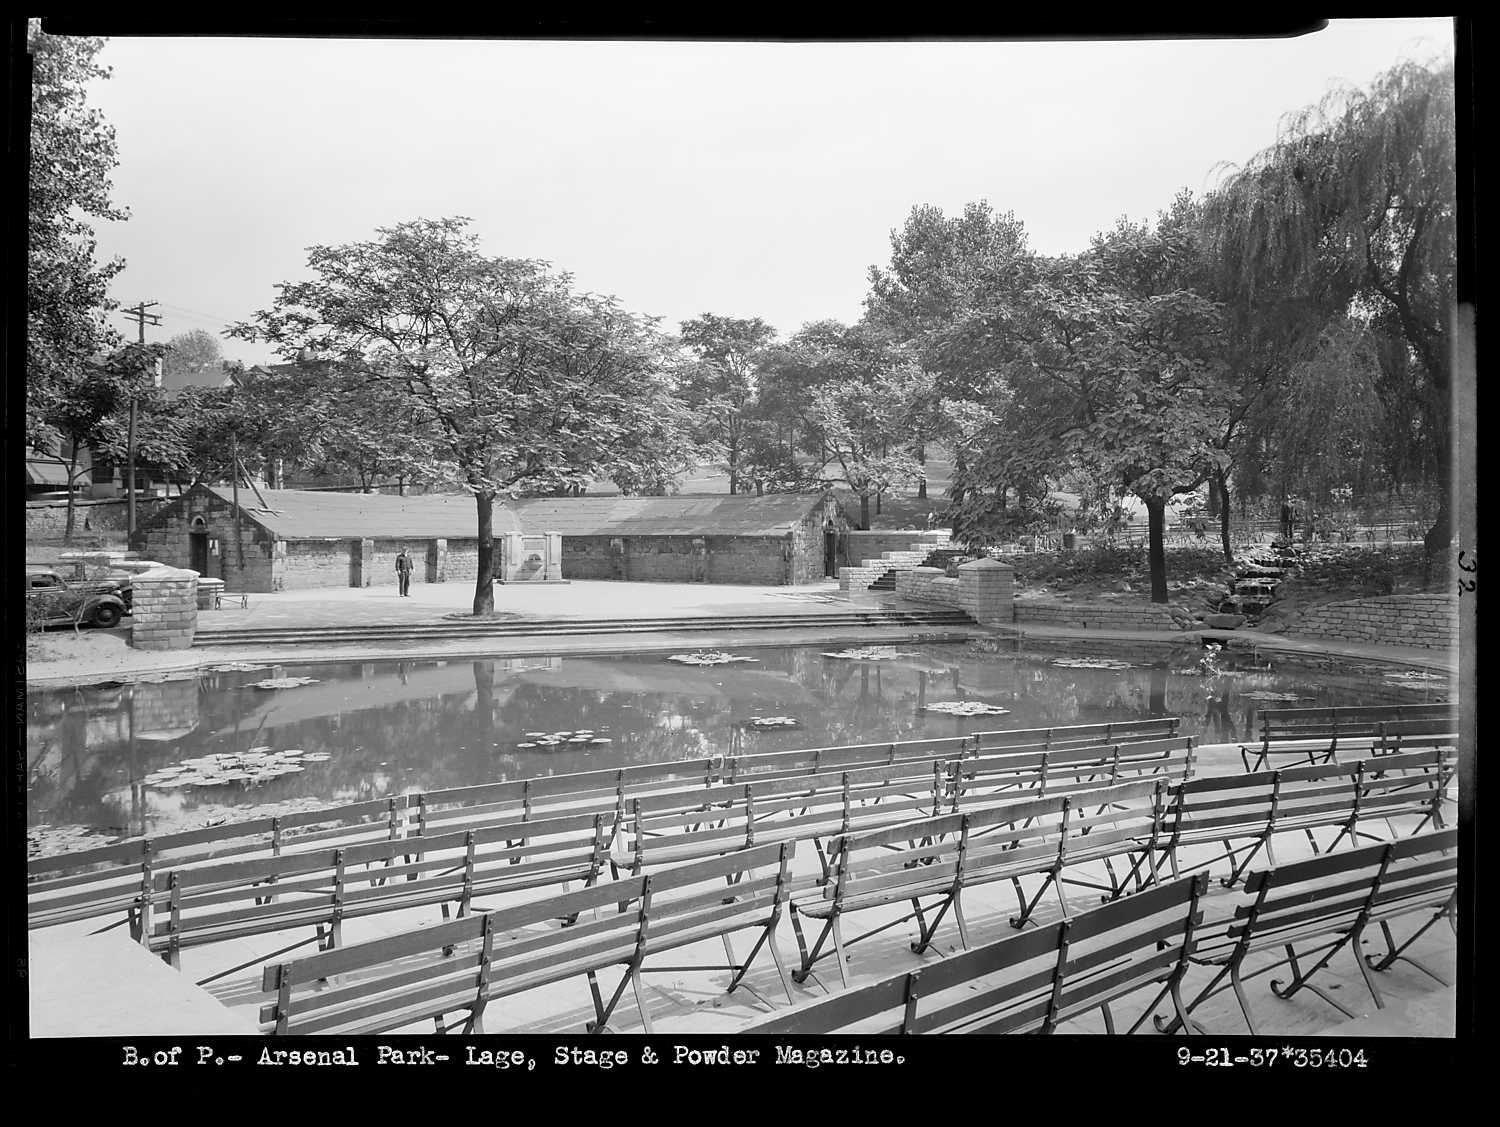 Same amphitheater with a small lake and seating during another time.